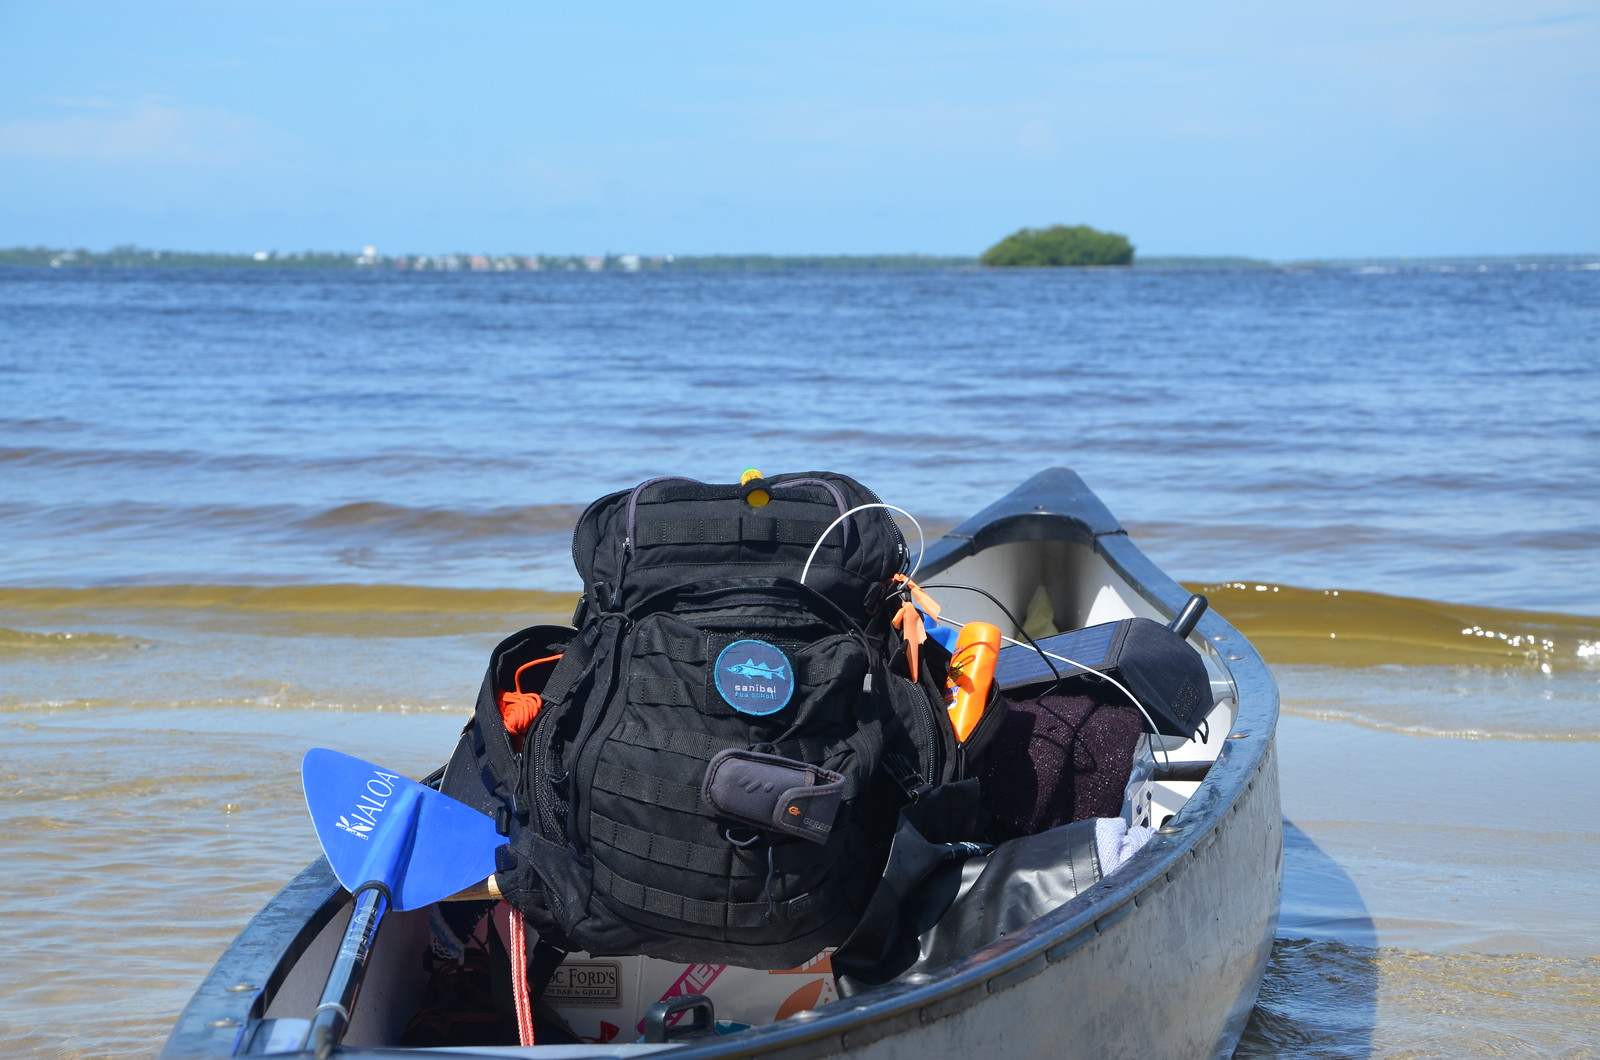 Campers will launch their boats from Pine Island and set out on an epic paddle to Cayo Costa State Park.